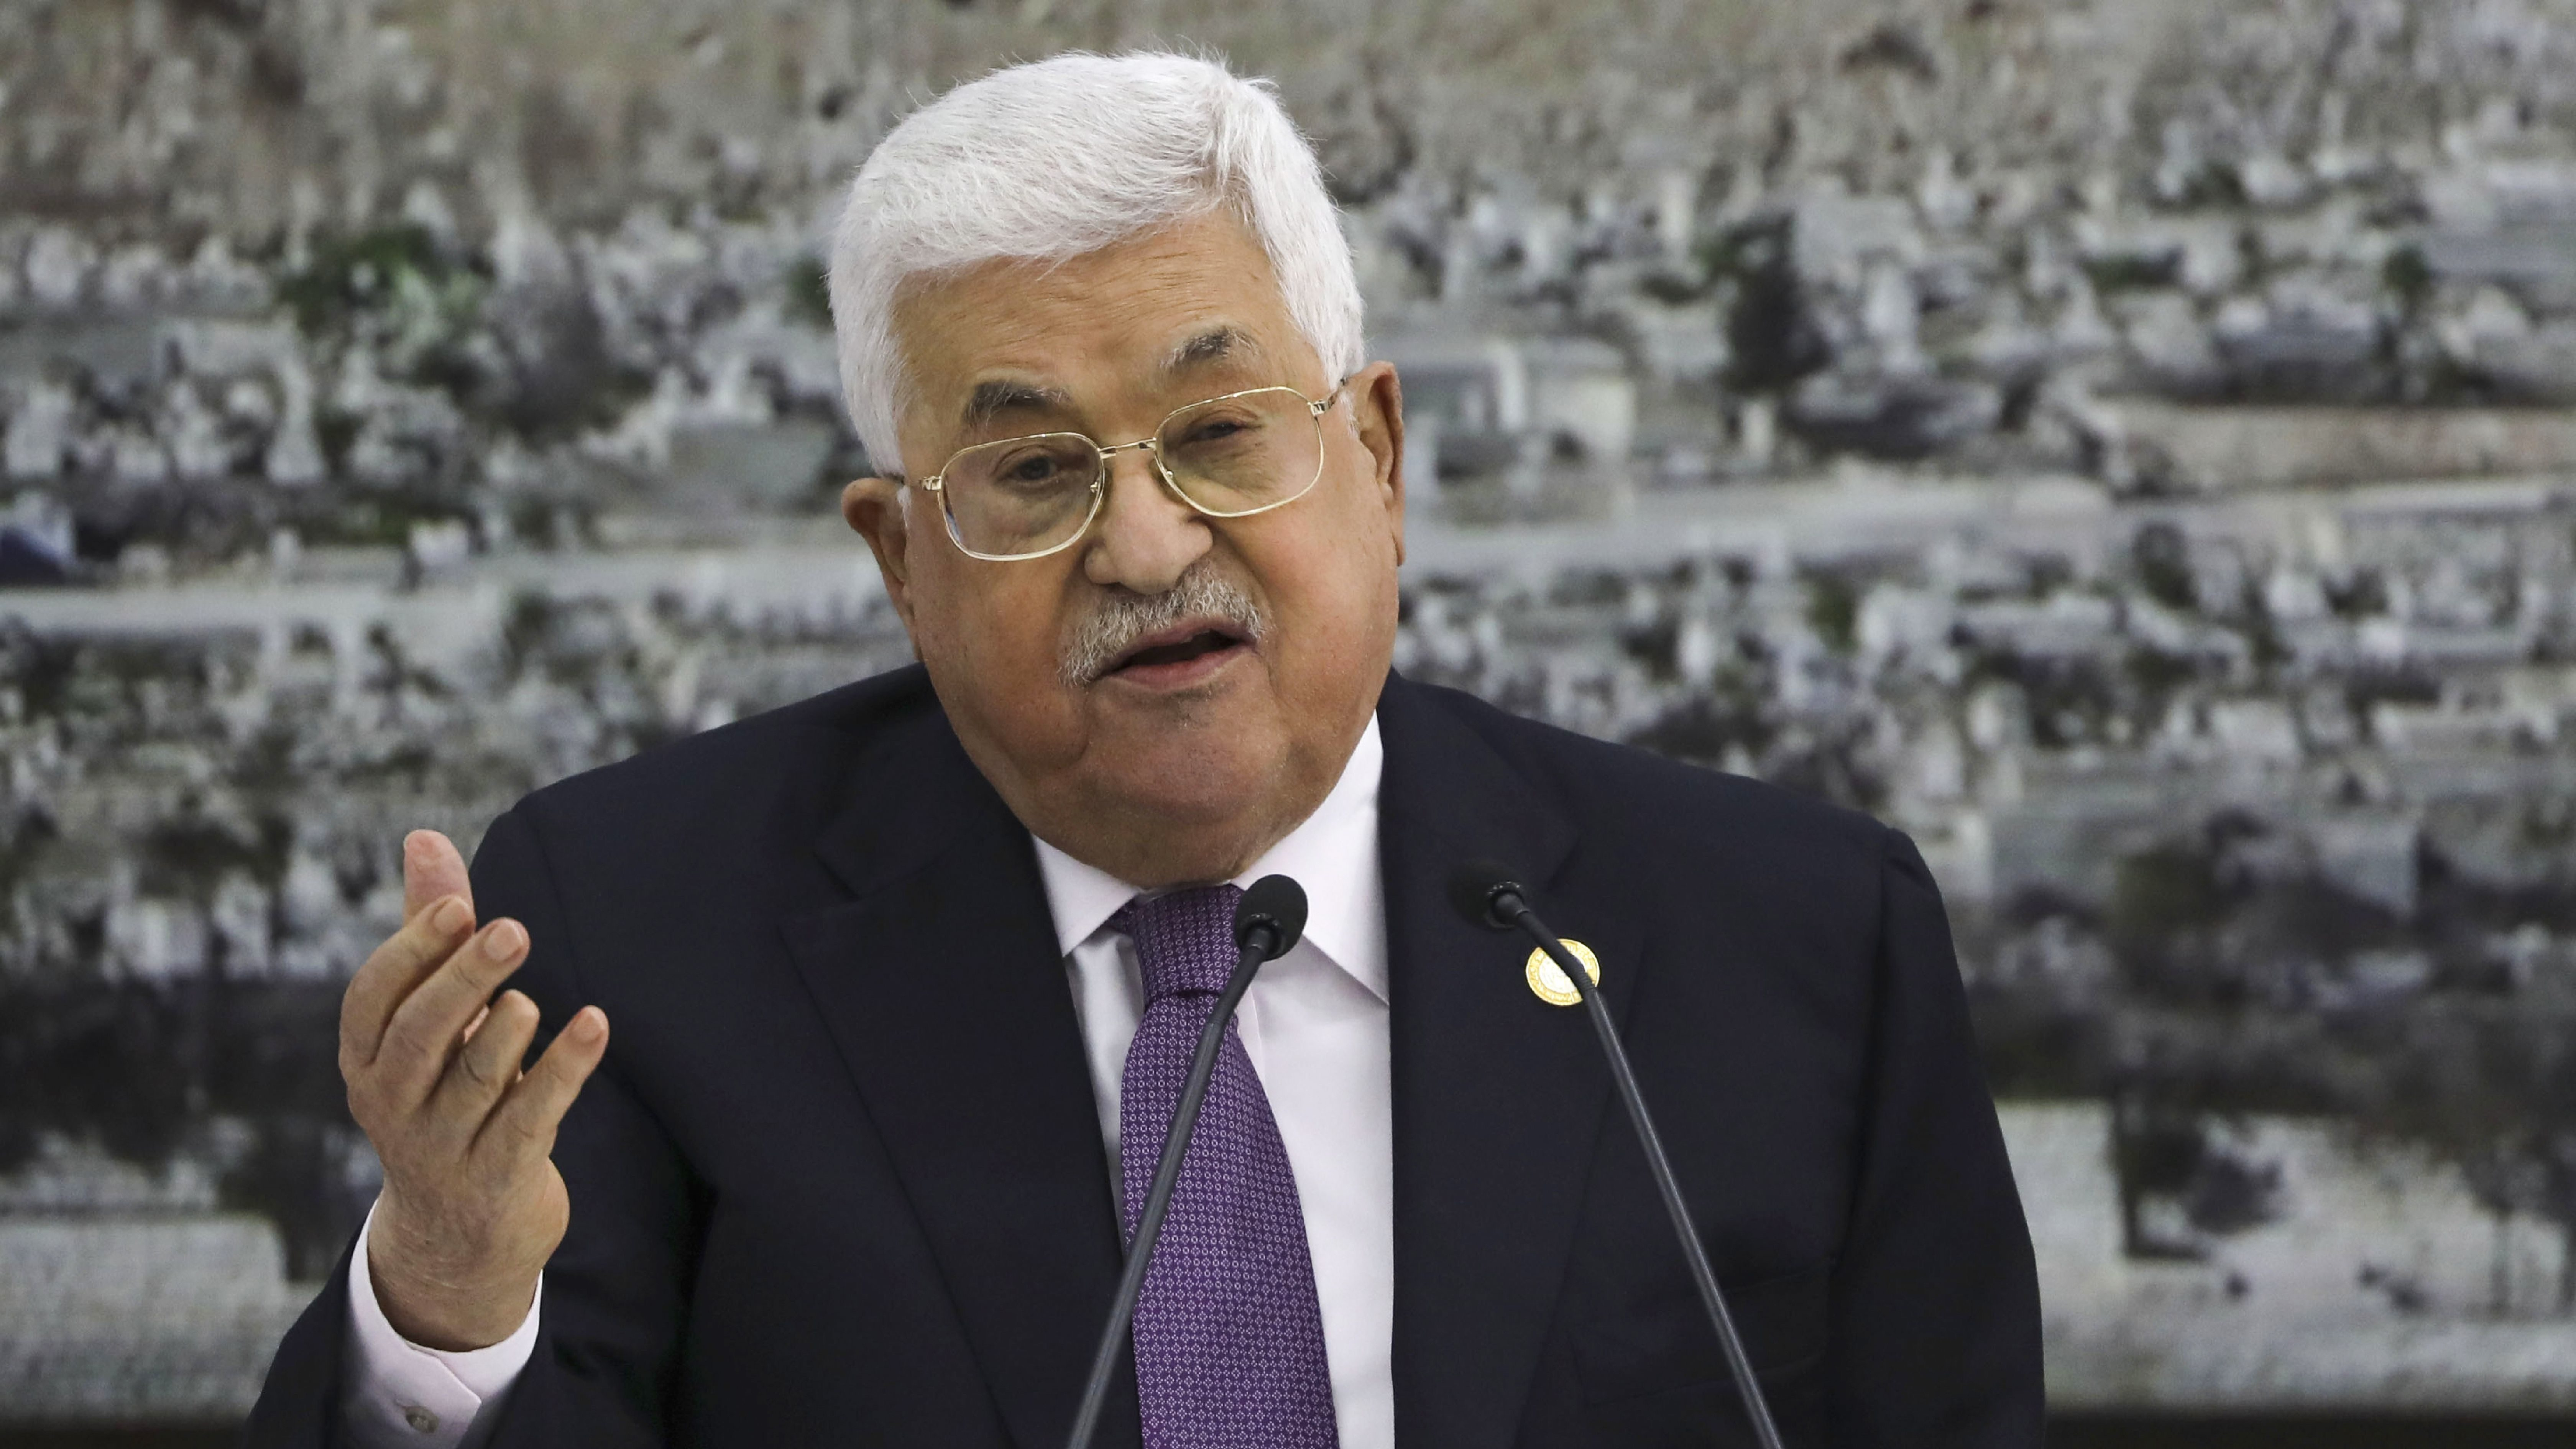 Abbas: We Will Go to Elections after All Factions Have Agreed